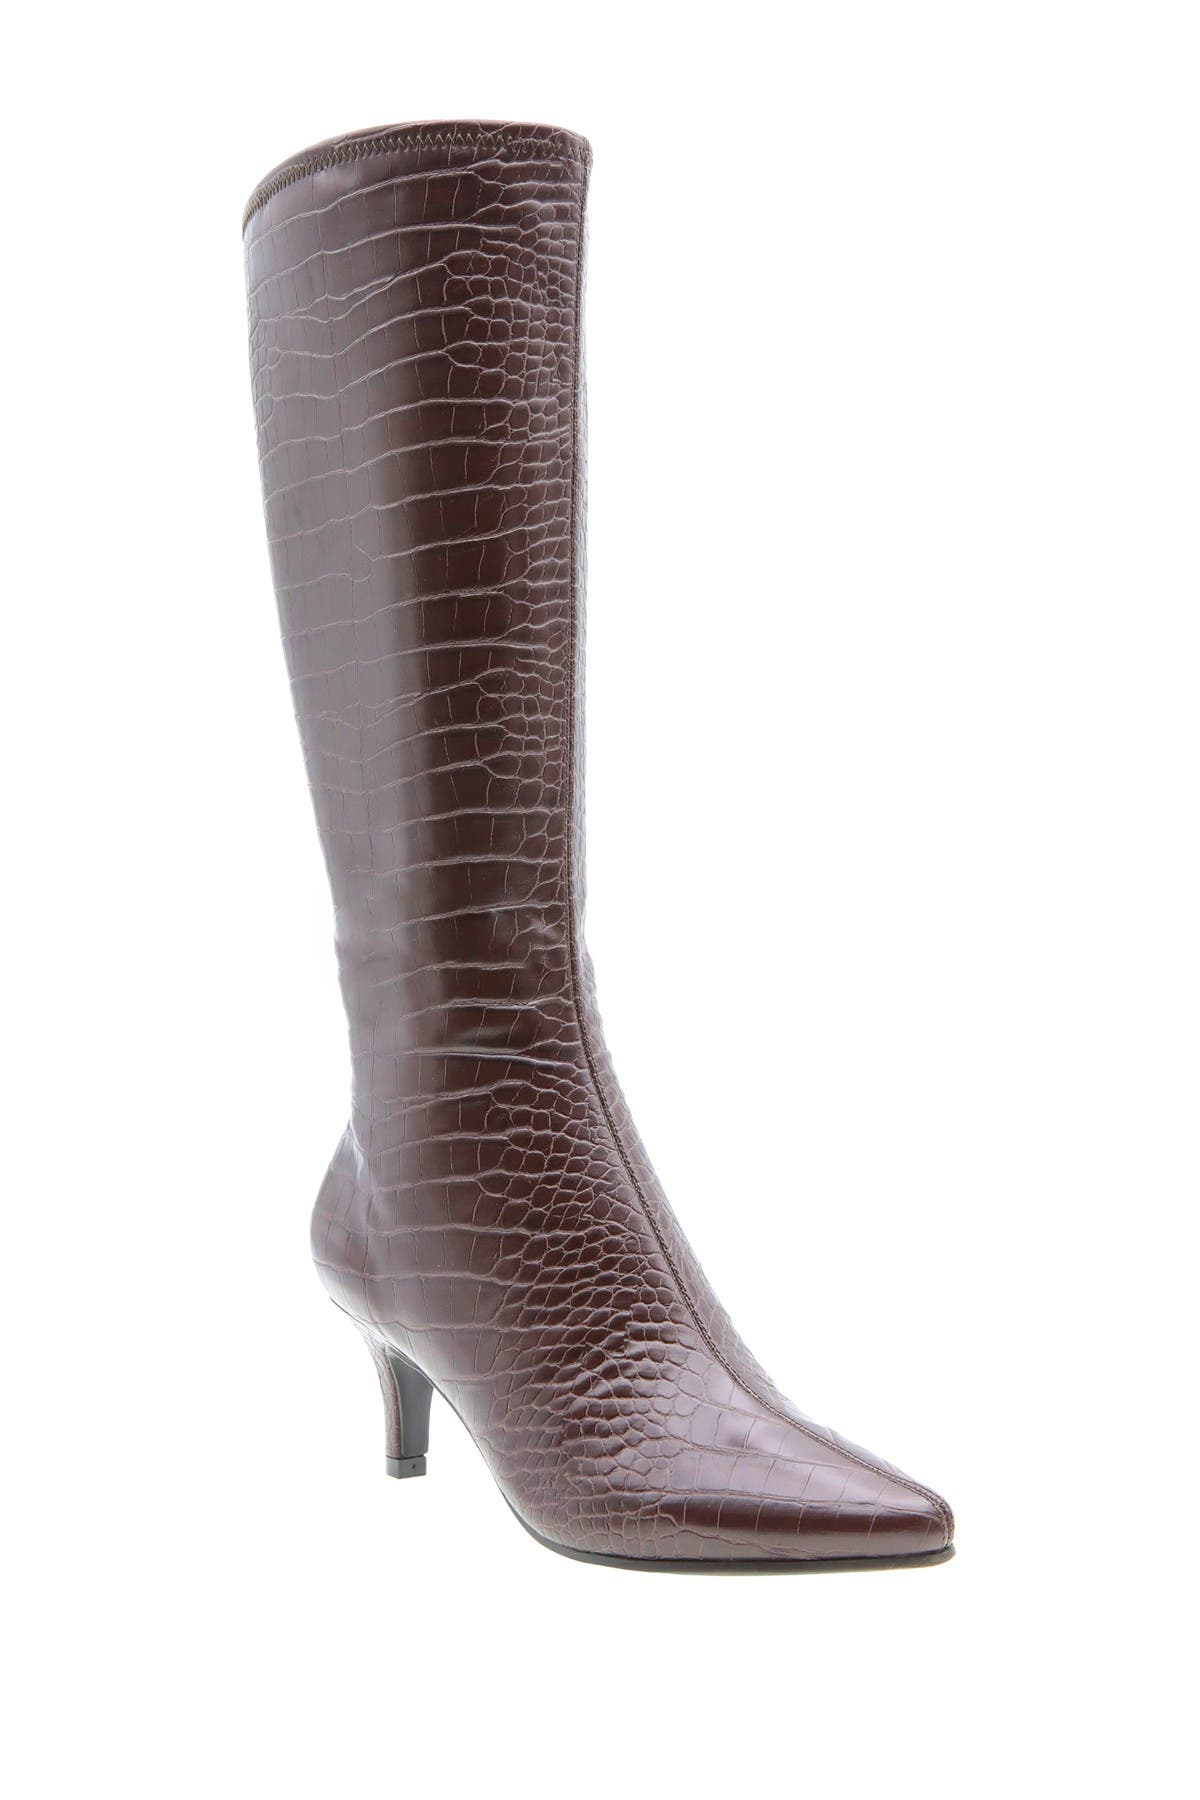 Image of Impo Noland Stretch Tall Dress Boot